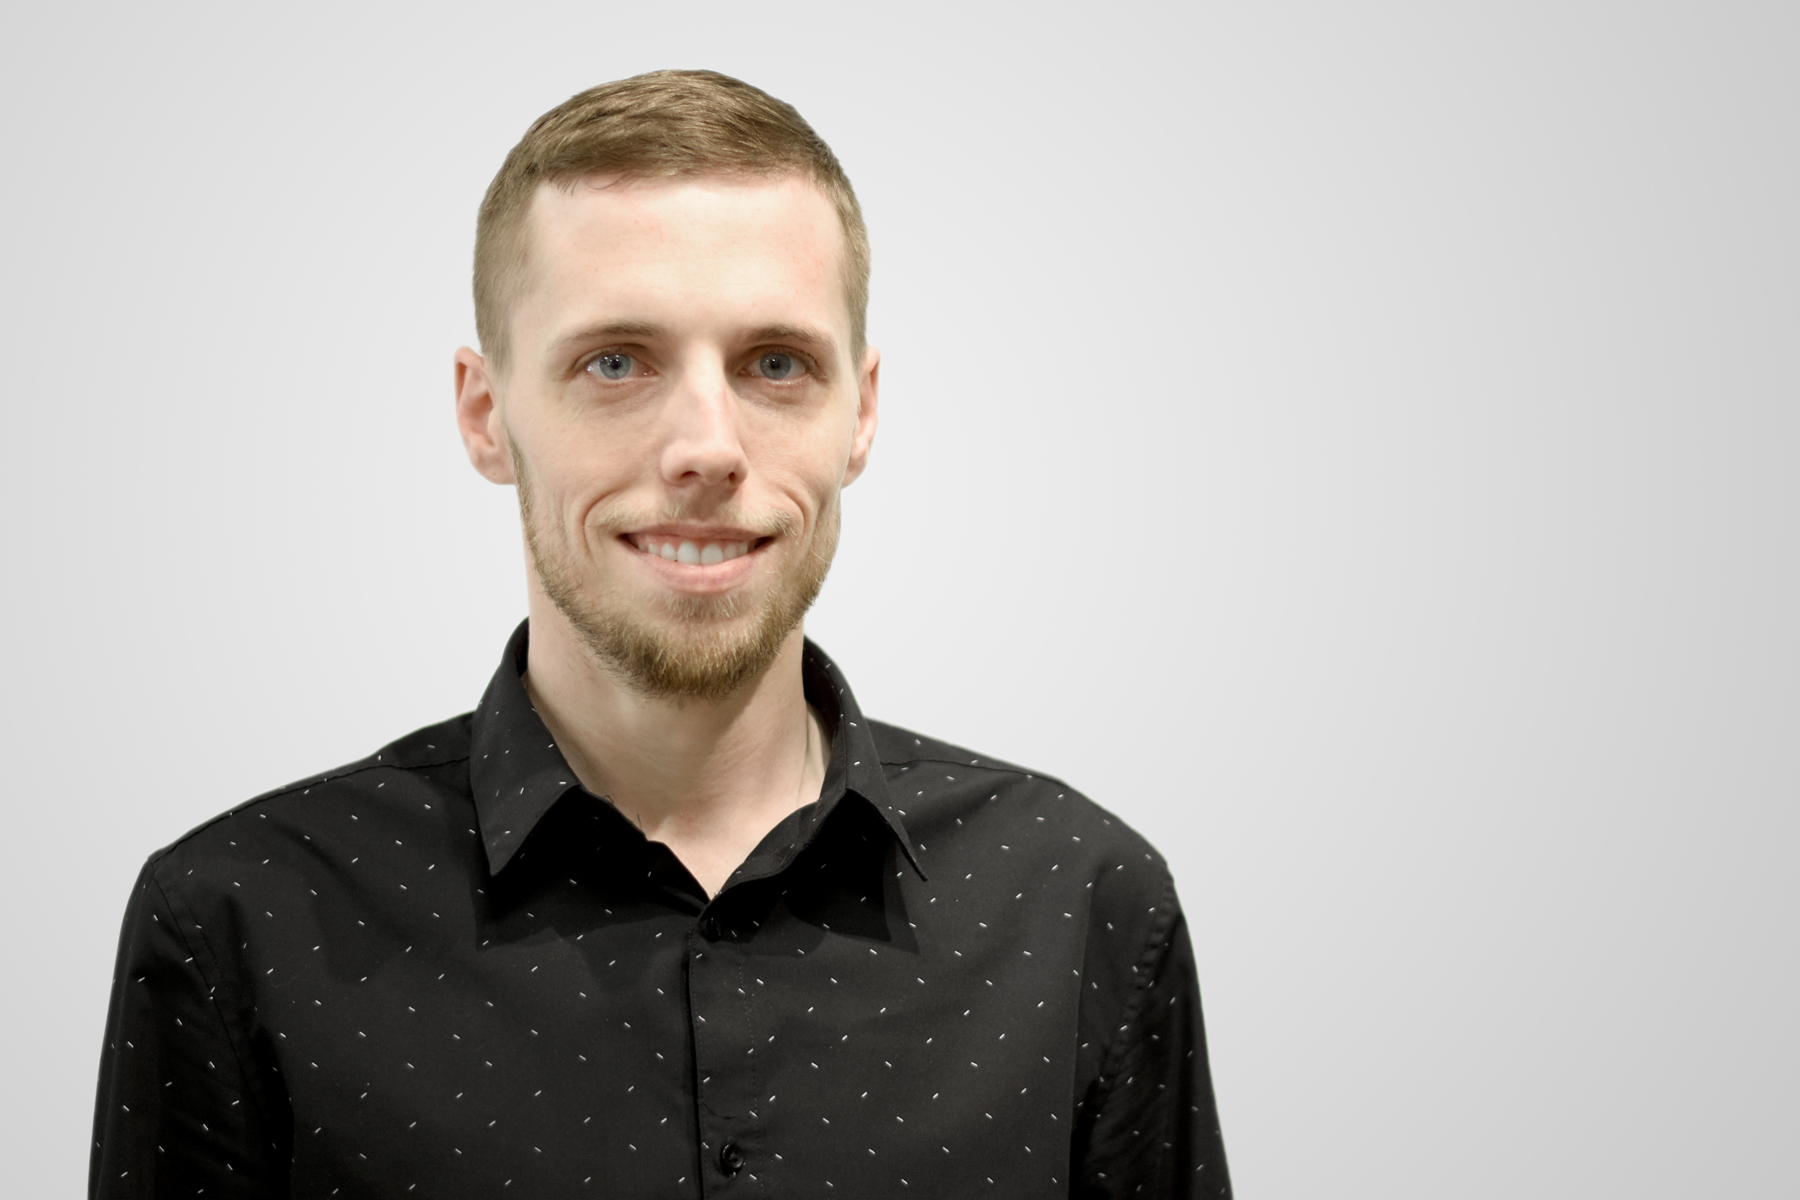 Derek Failor Manager/Front Desk   Joined the Artistic team in February of 2010. I have used AVEDA products my entire life and love them. I am proud to be a part of the Artistic team, which allows me to provide quality customer service and support the staff in any way I can.